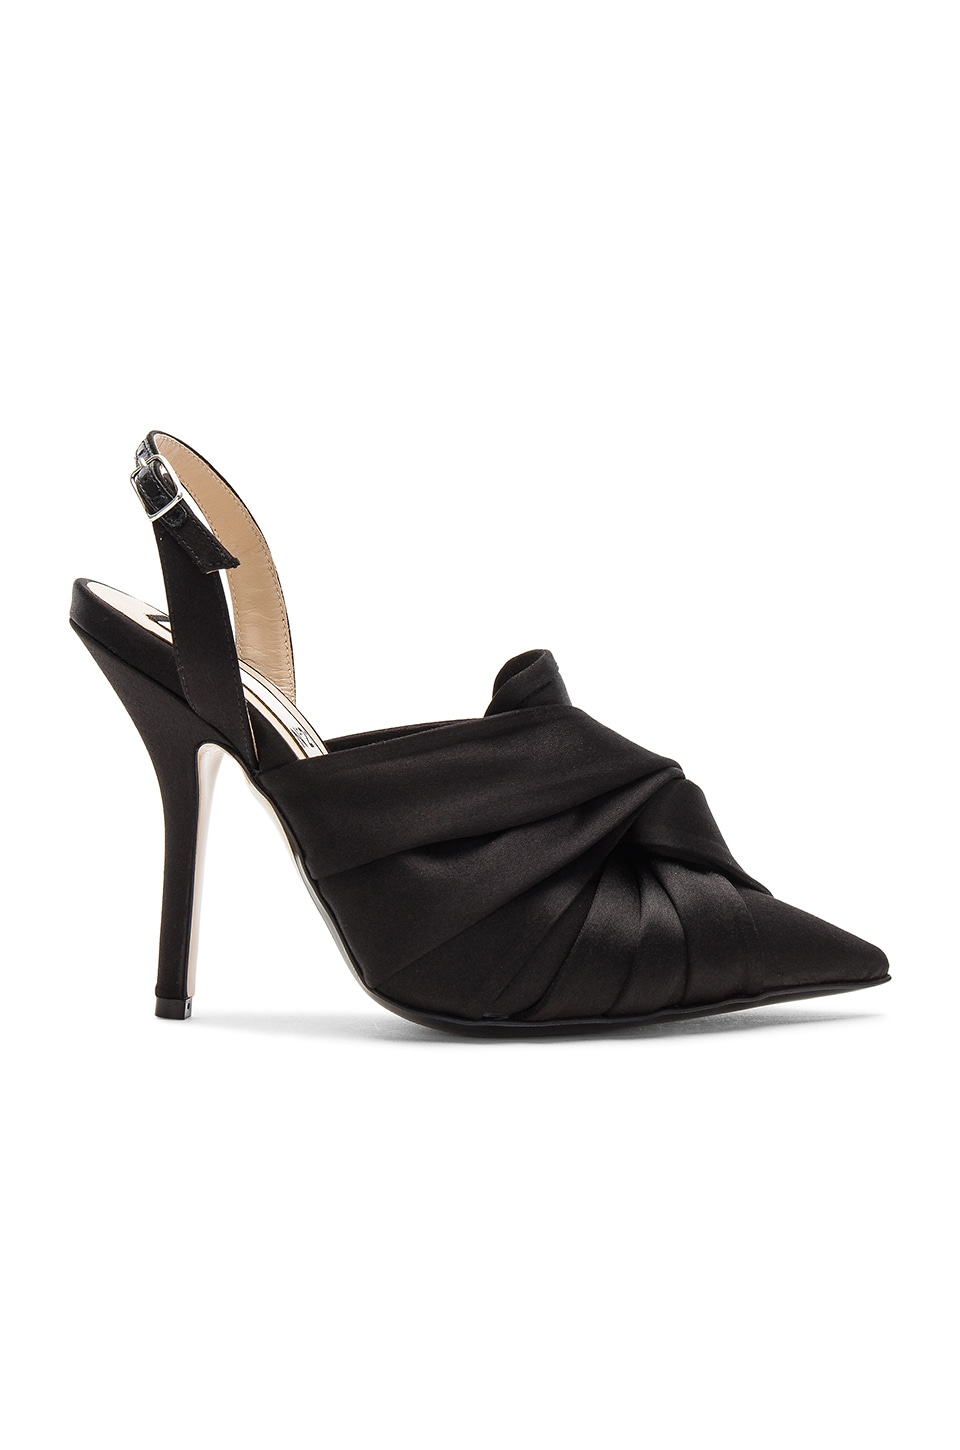 Satin Ankle Strap Bow Heel by No. 21